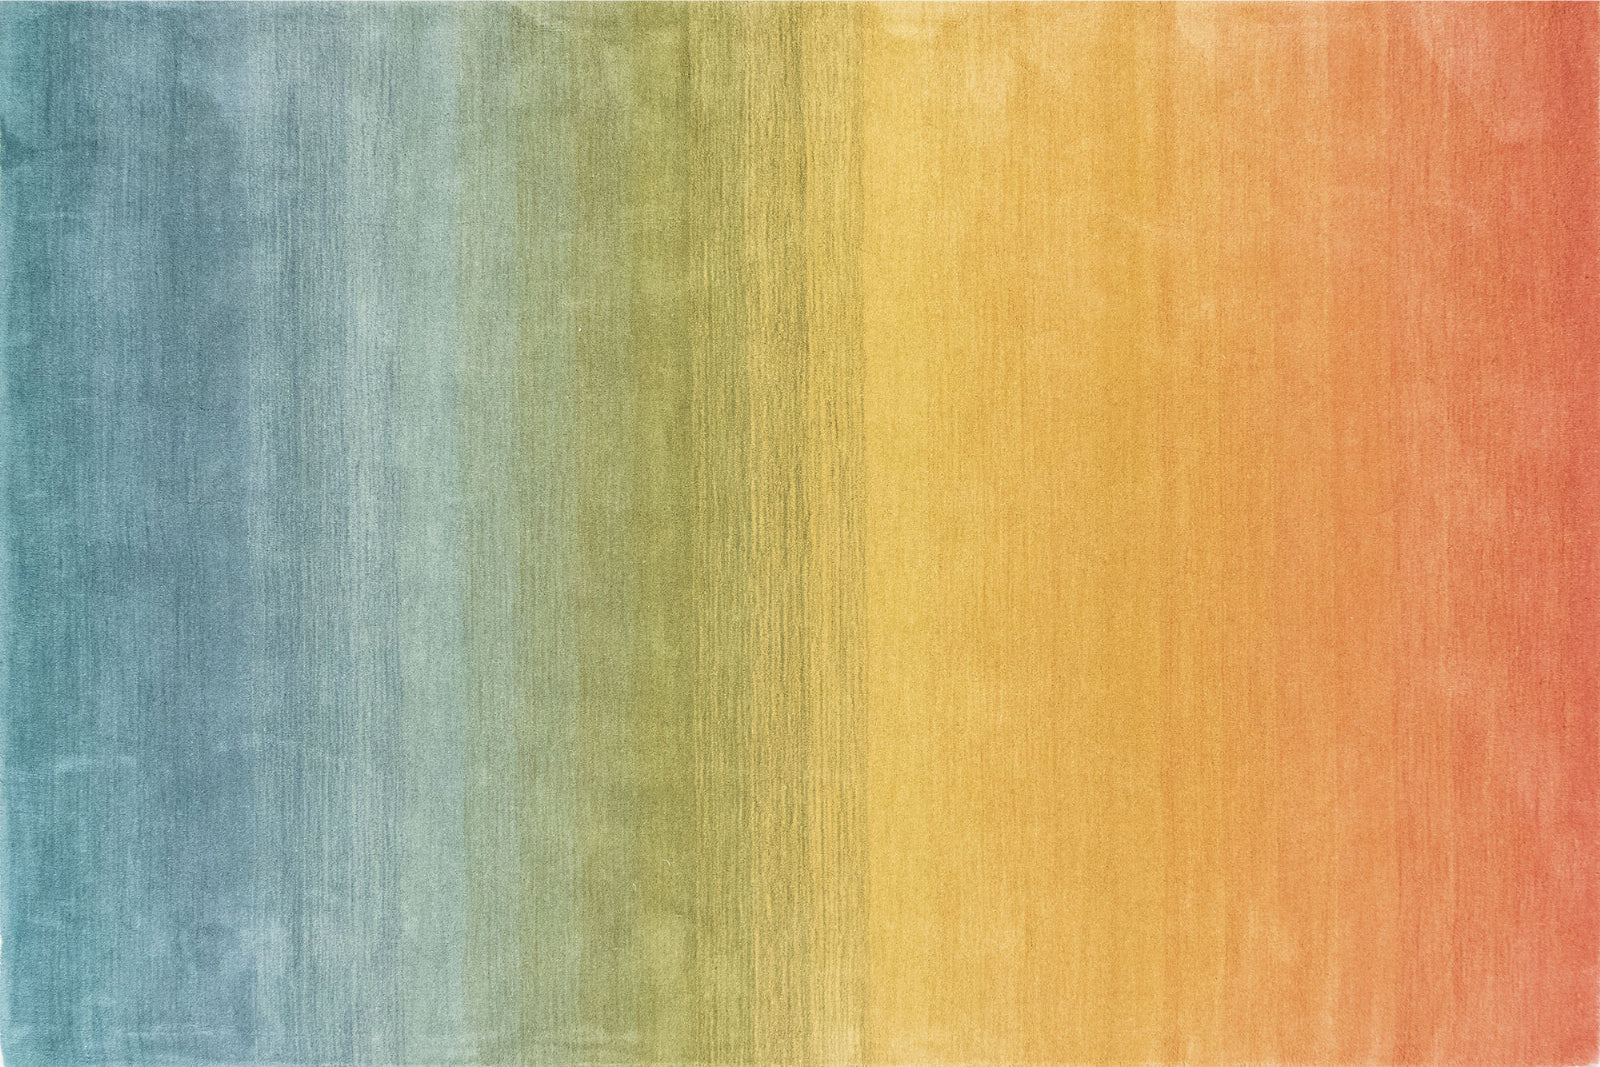 Trans Ocean ARCA Ombre Rainbow Area Rug by Liora Manne main image